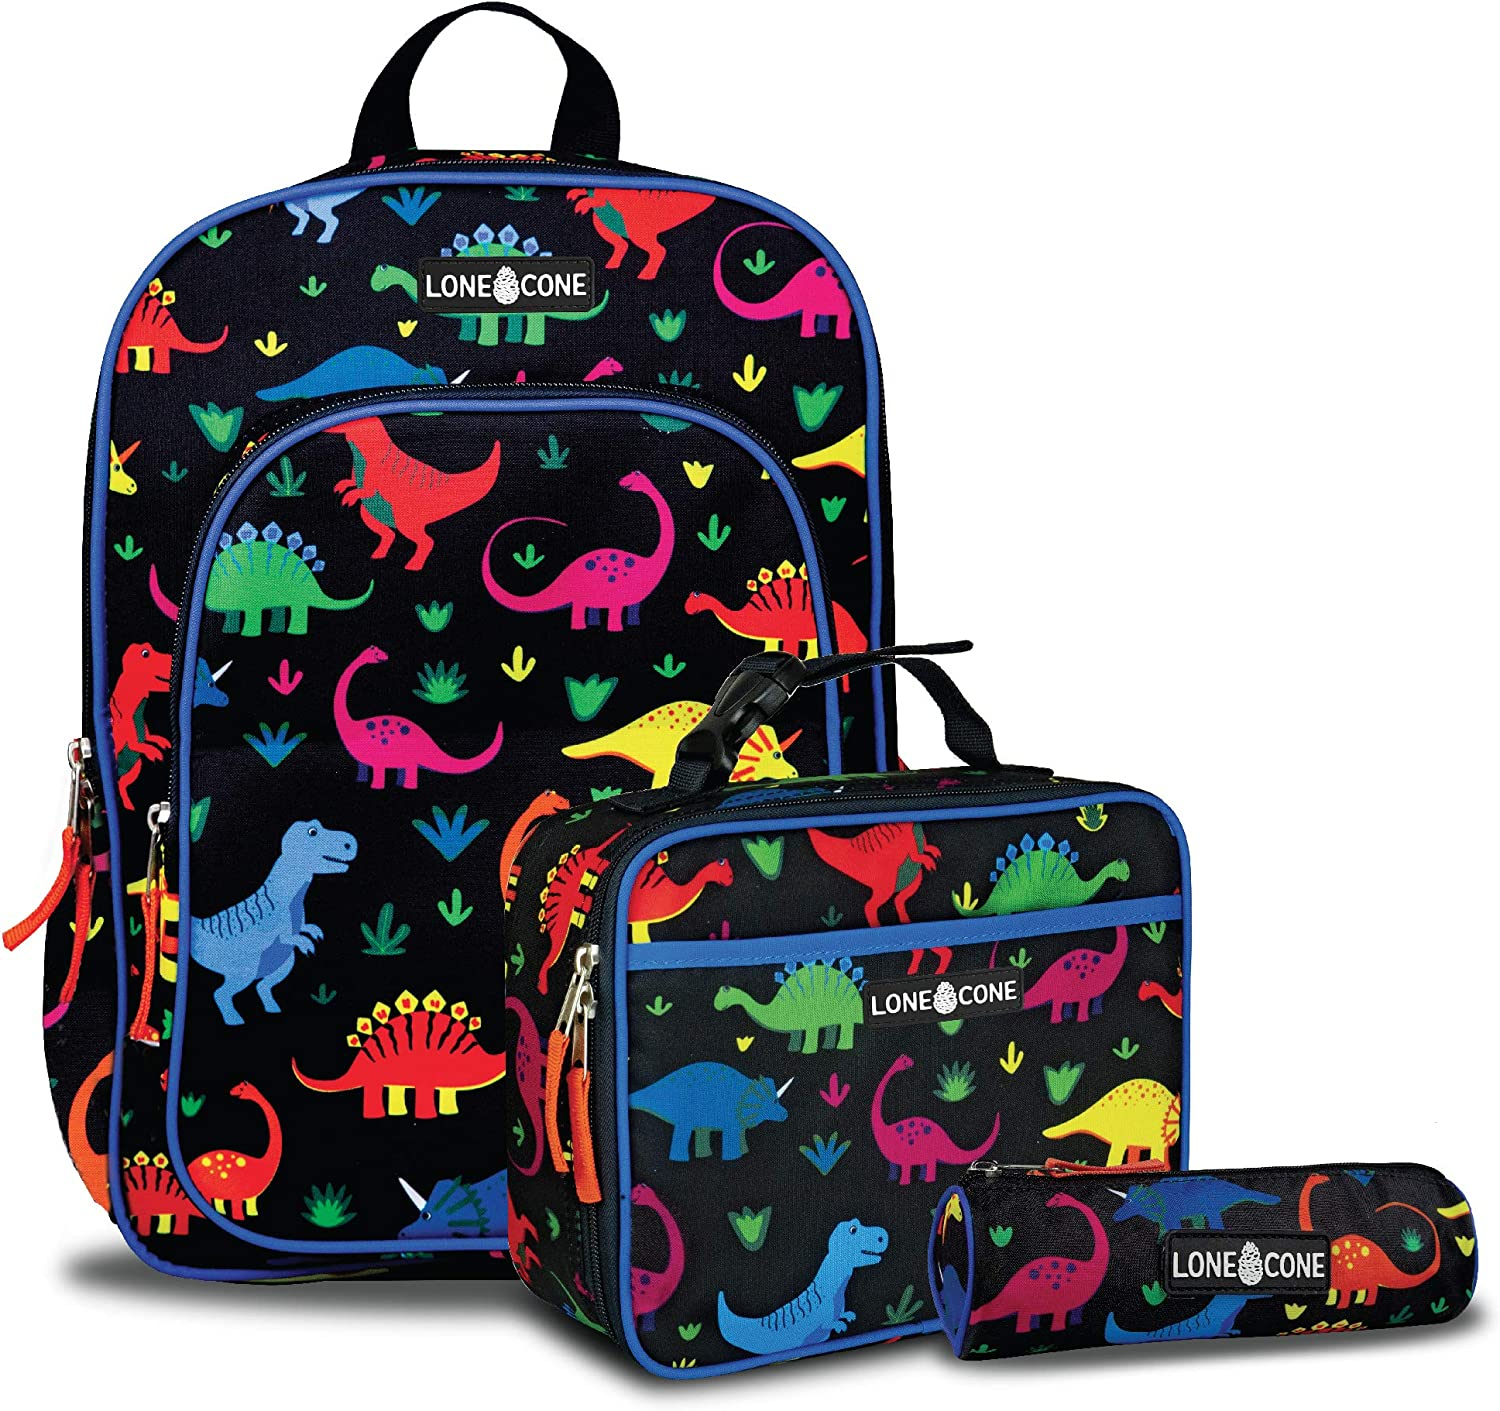 LONECONE Kids' 3-Piece Back to School Kit - Backpack, Lunchbox & Pencil Case- Fossil Friends